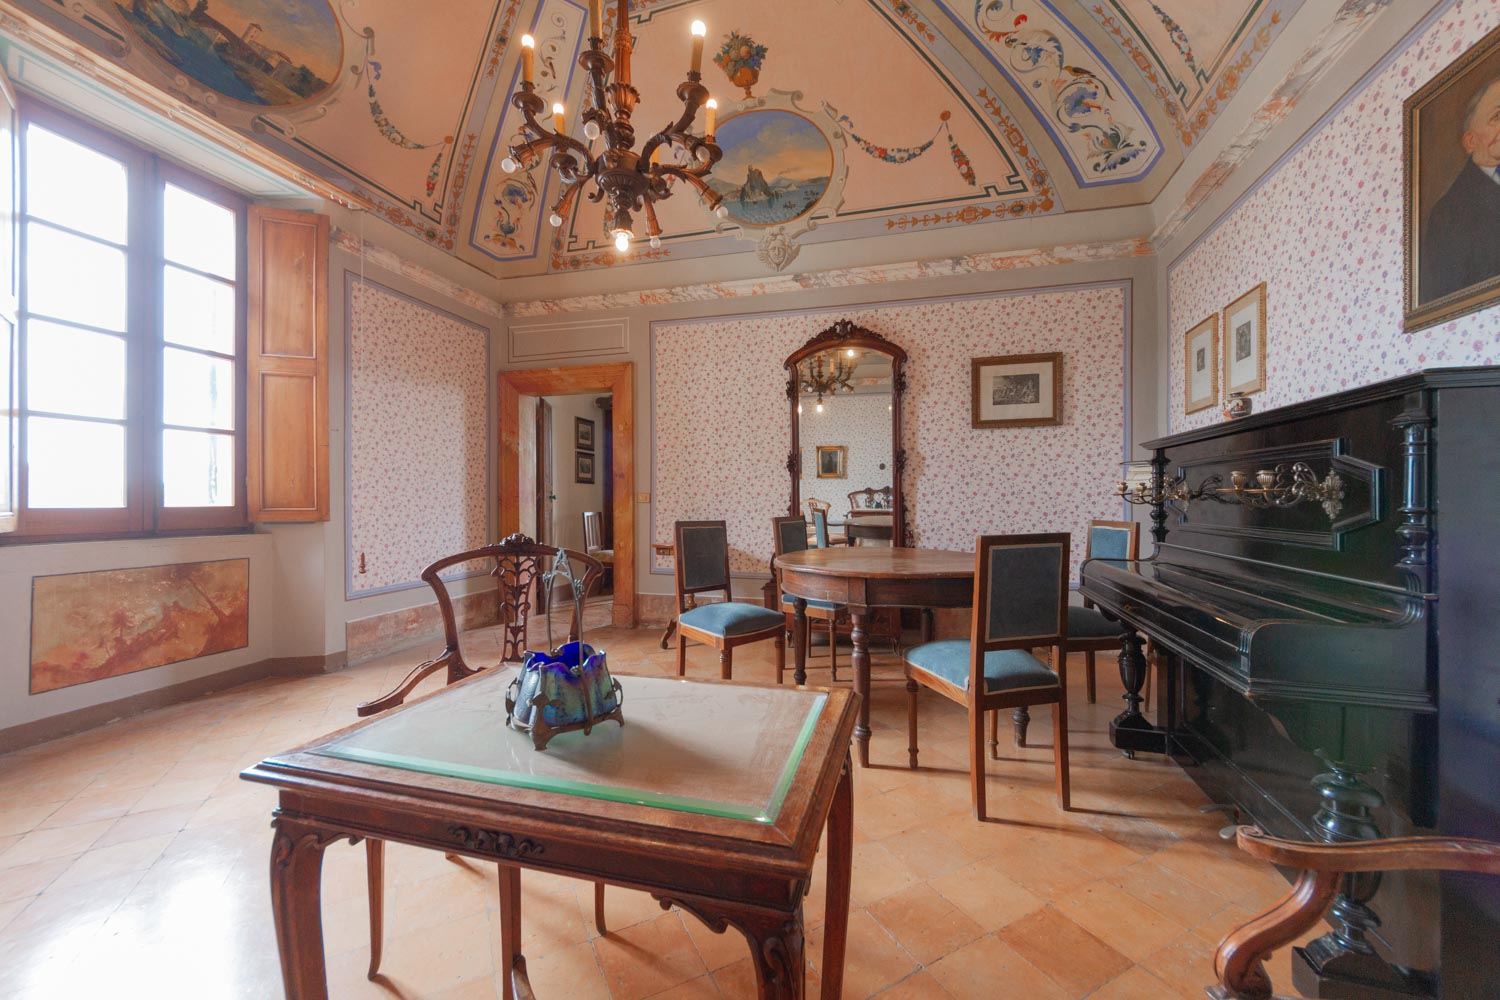 Property for Sale Umbria – Apartment in Historical Palace in Amelia